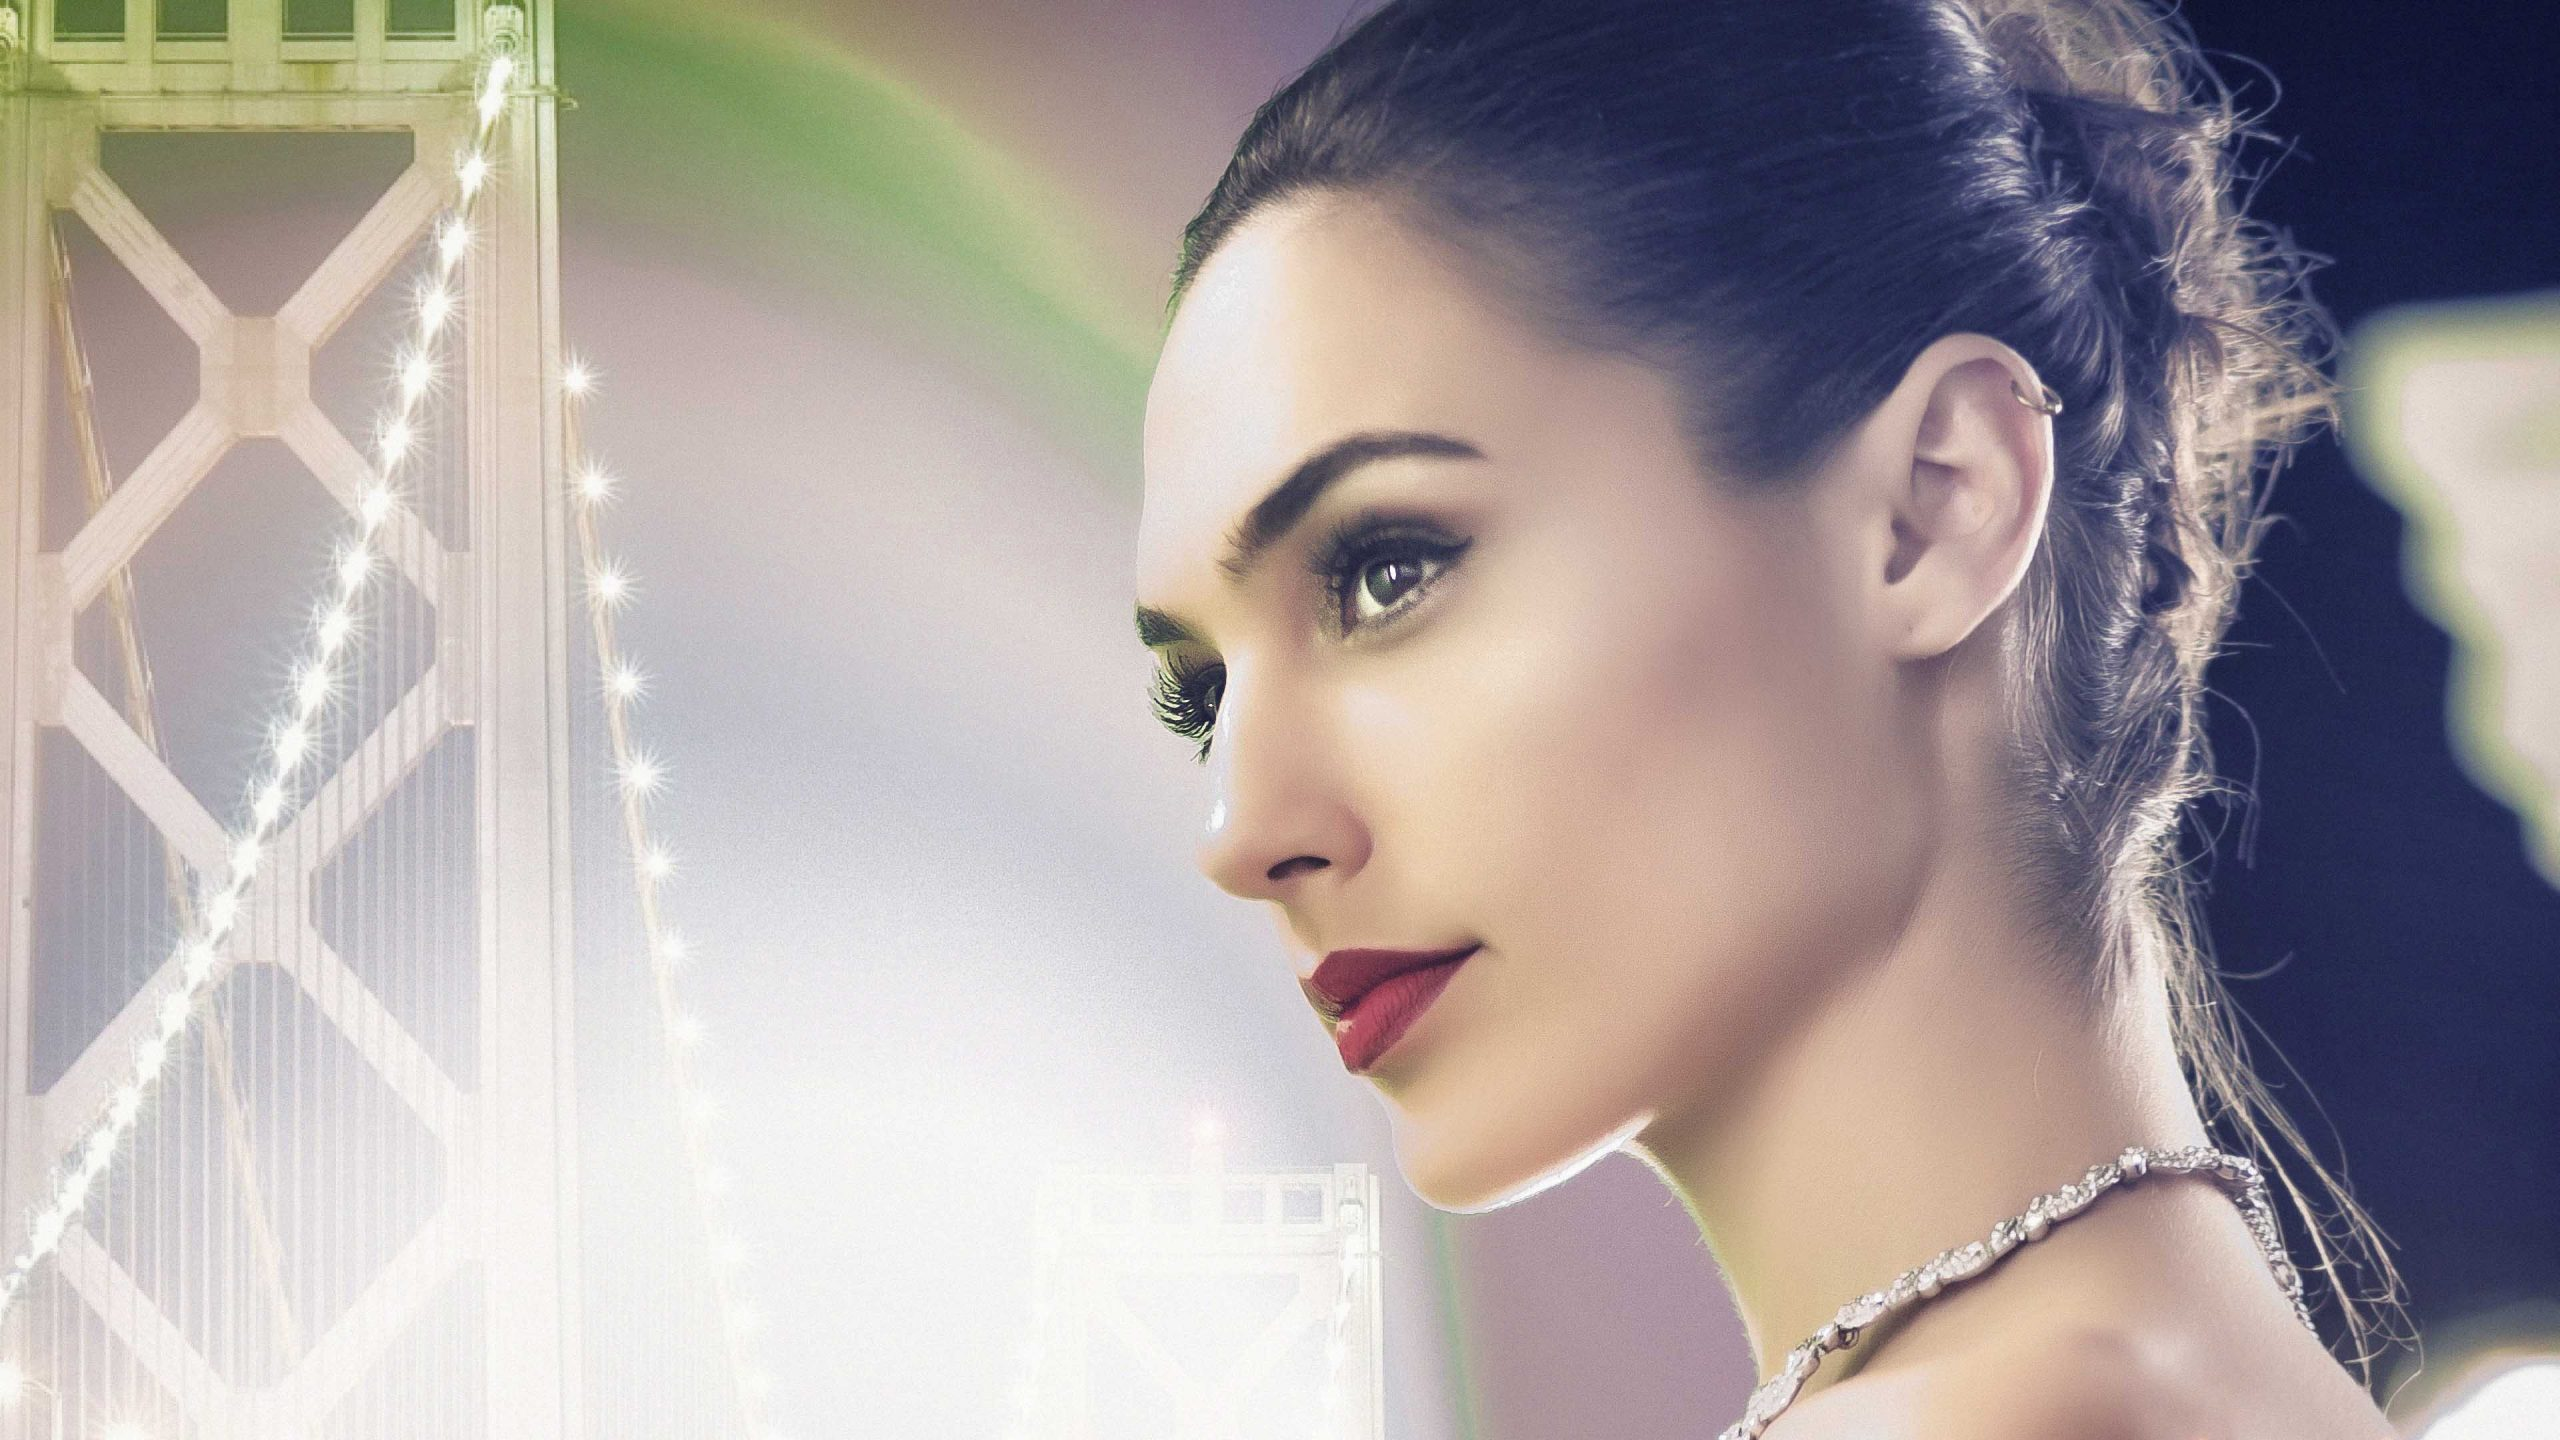 Why Casting Gal Gadot's as Cleopatra Is Another Example of Hollywood's Whitewashing thumbnail